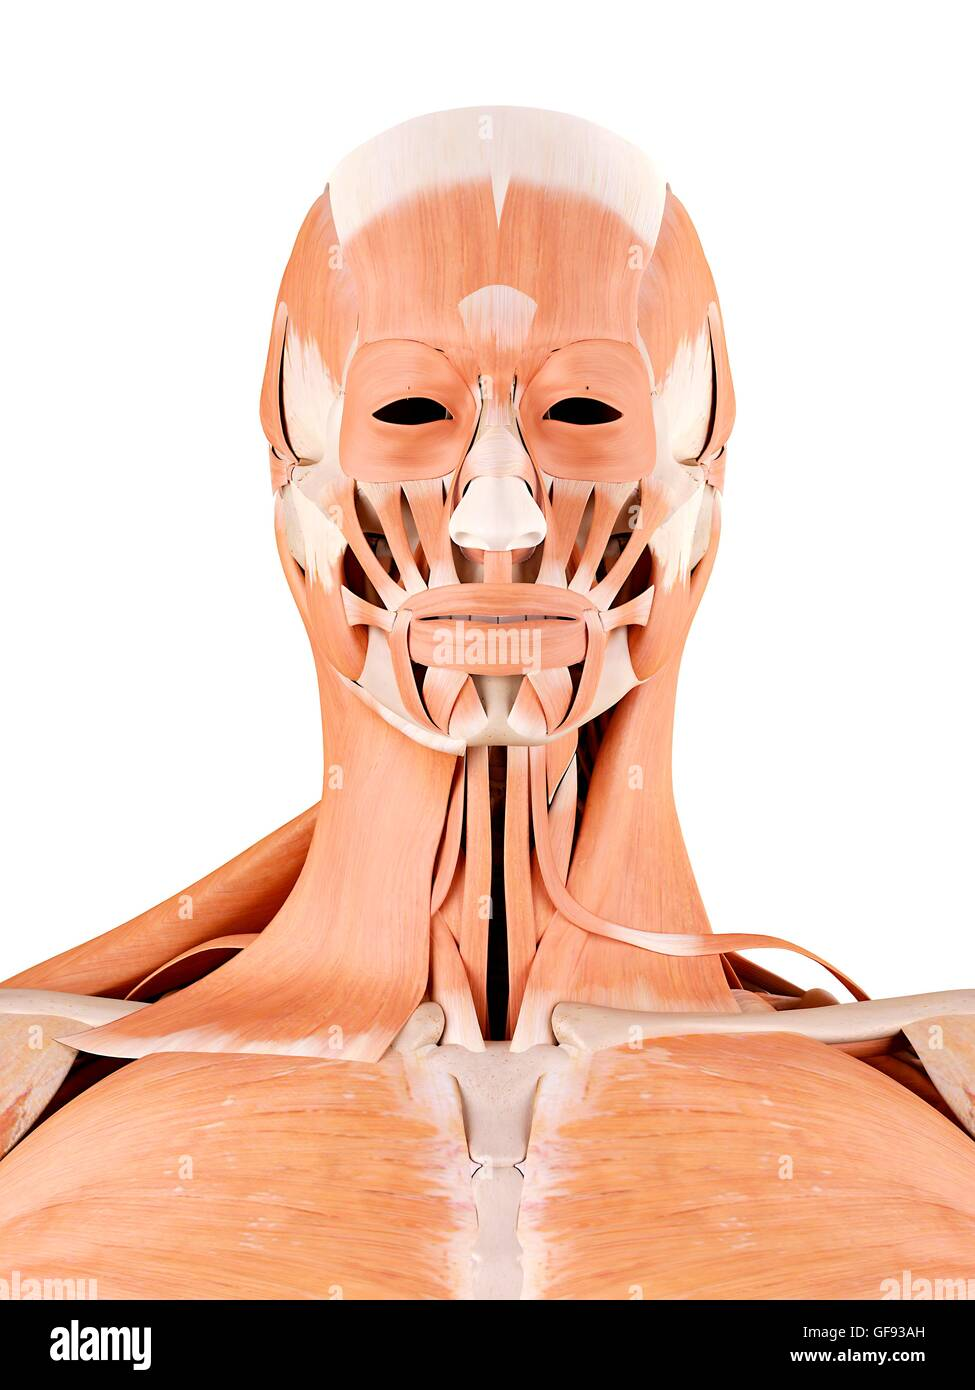 Human Face And Neck Muscles Illustration Stock Photo 112682265 Alamy